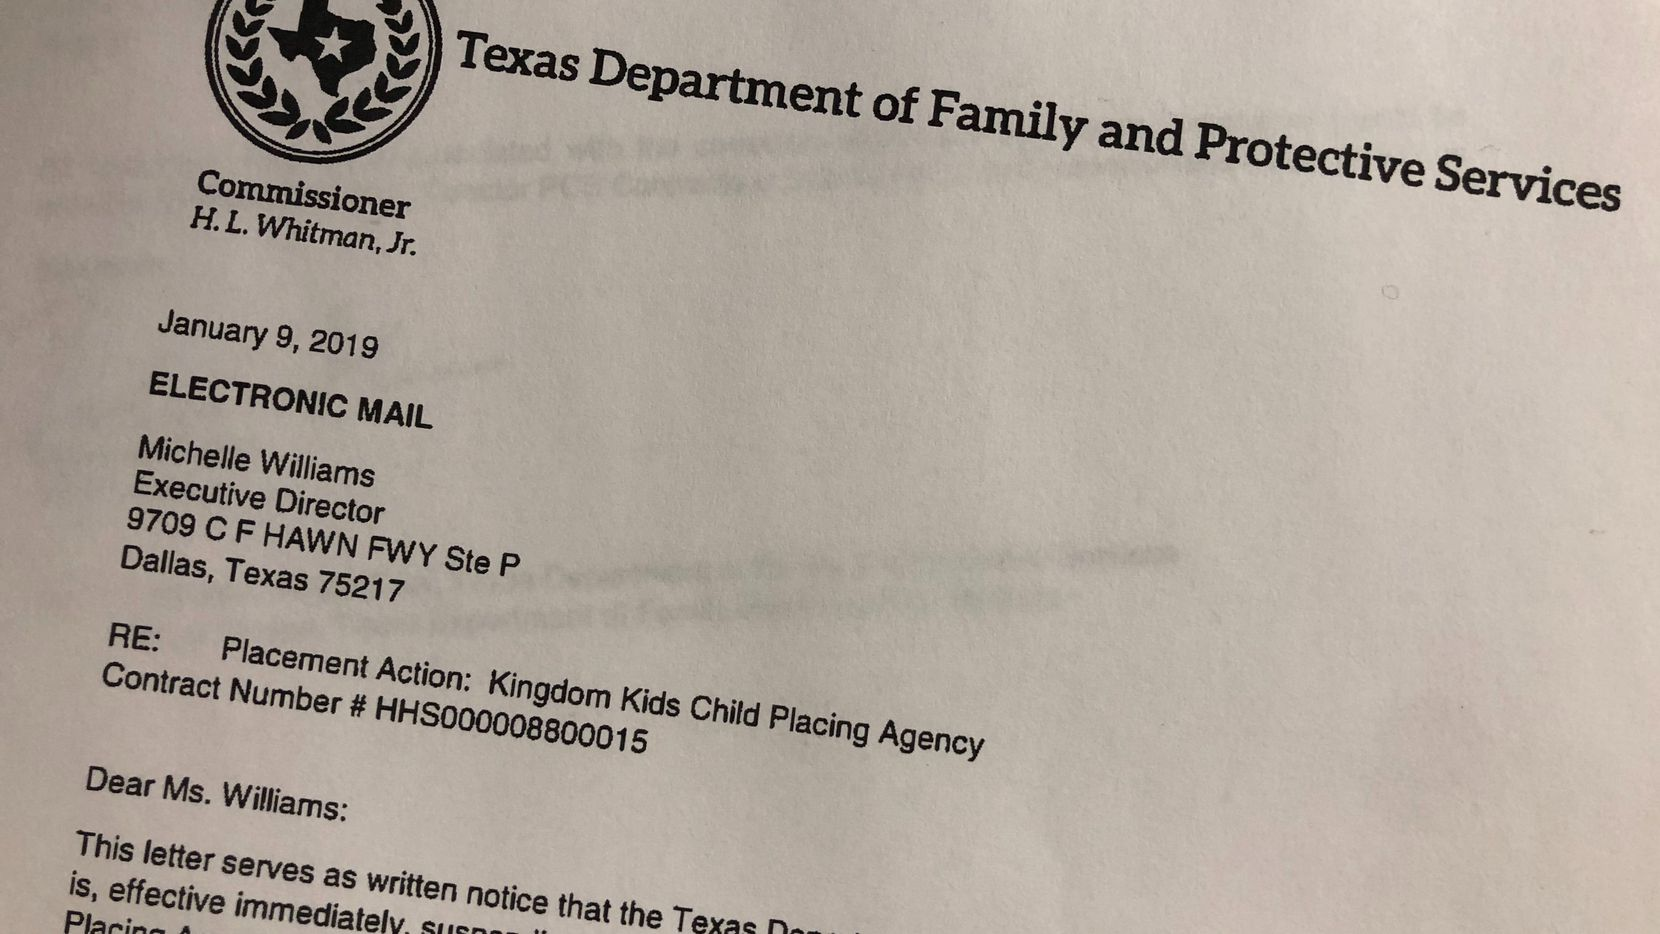 "In a letter to Kingdom Kids Child Placing Agency dated Jan. 9, the Texas Department of Family and Protective Services said the decision to suspend placements was made because of ""allegations that impact the health, safety and well-being of children."""